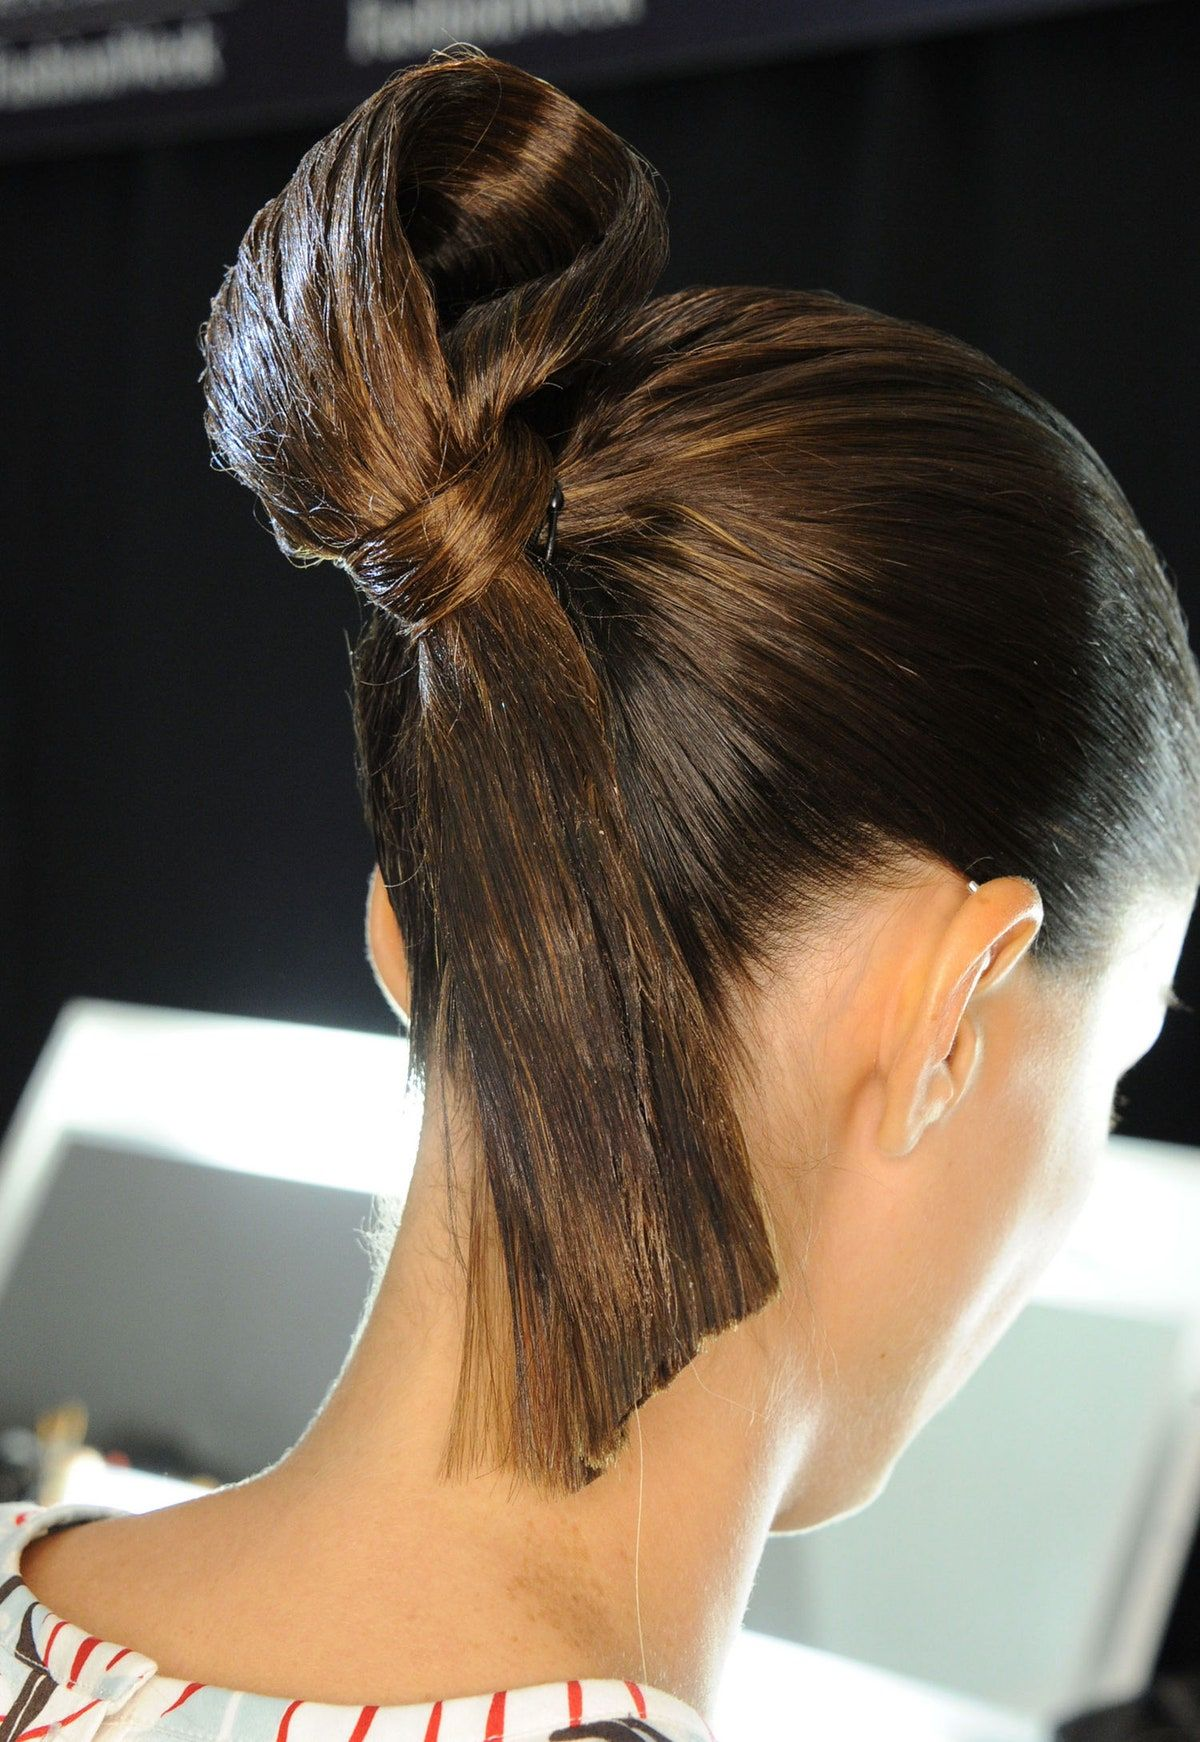 The Cool Sumo Knot Hairstyle From The Carolina Herrera Spring 2015 Fashion Show Glamour In 2020 Sleek Hairstyles Cool Hairstyles Fashion Week Hair